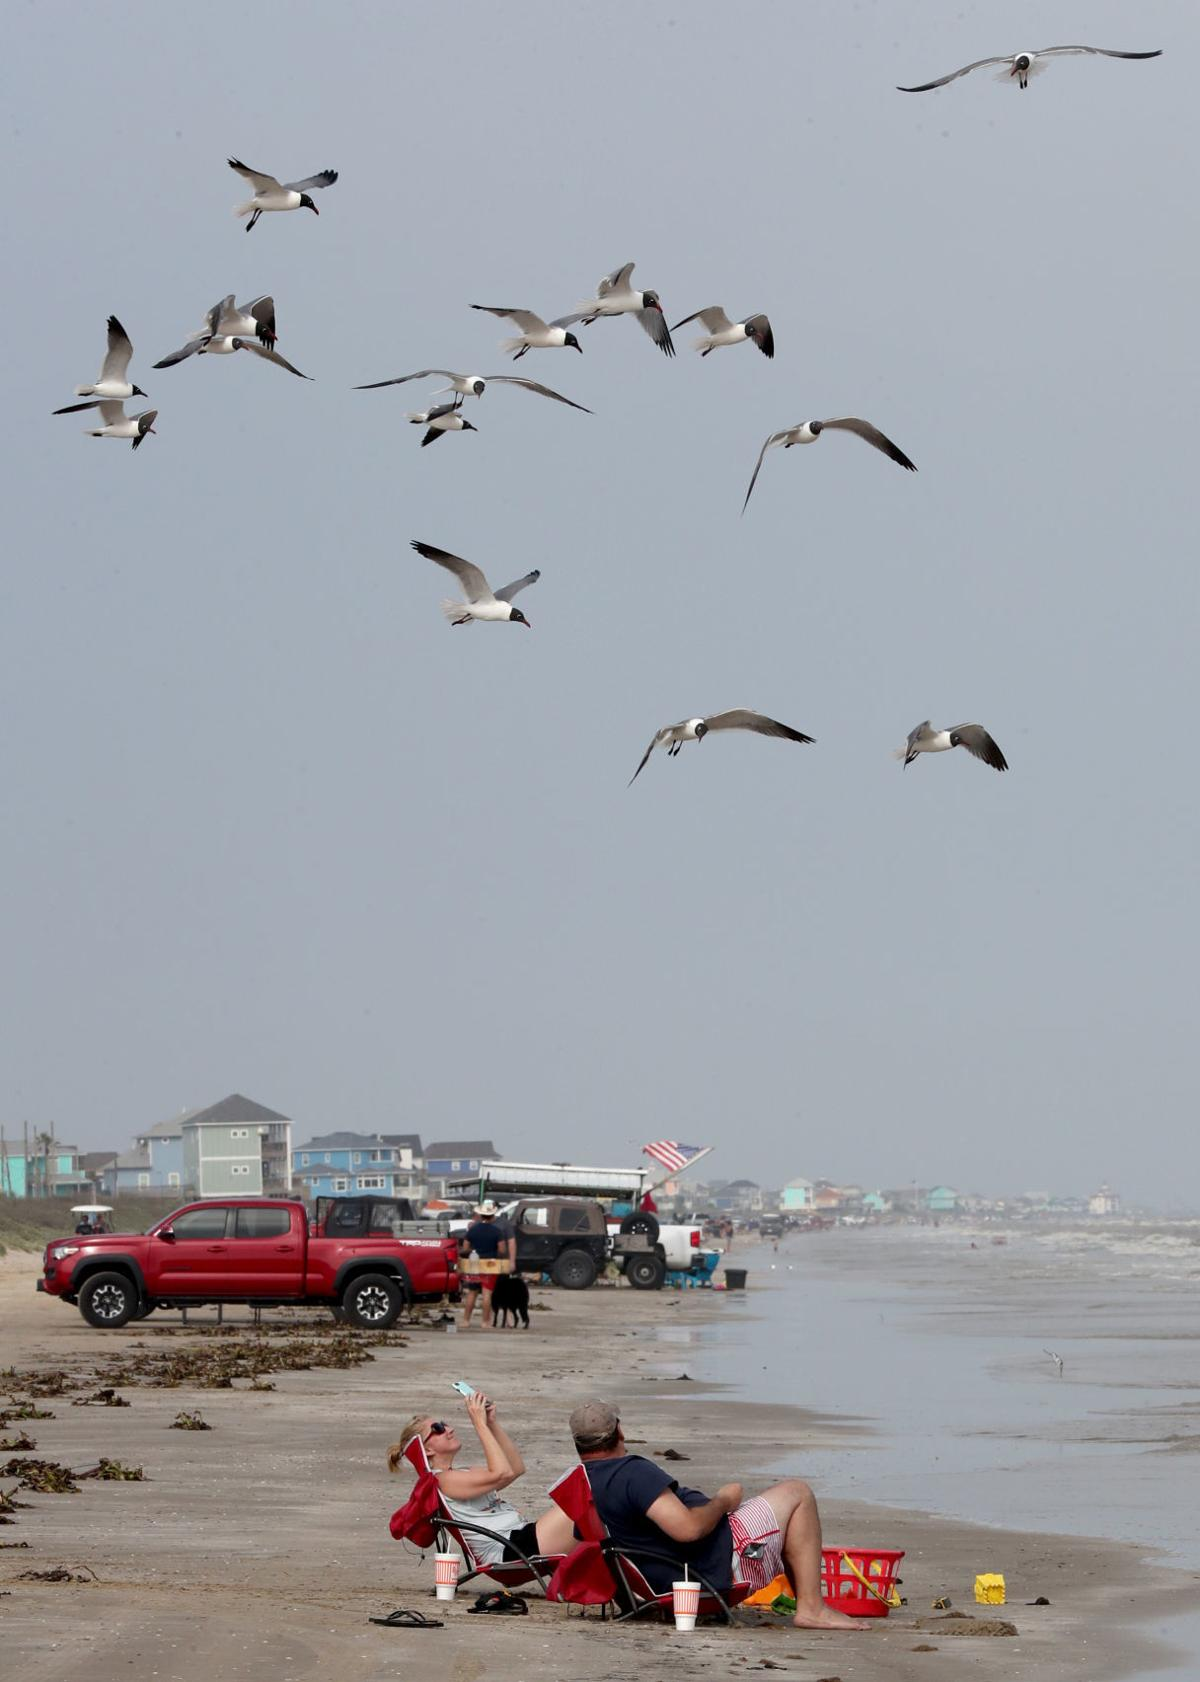 Bolivar Peninsula beaches to close Friday